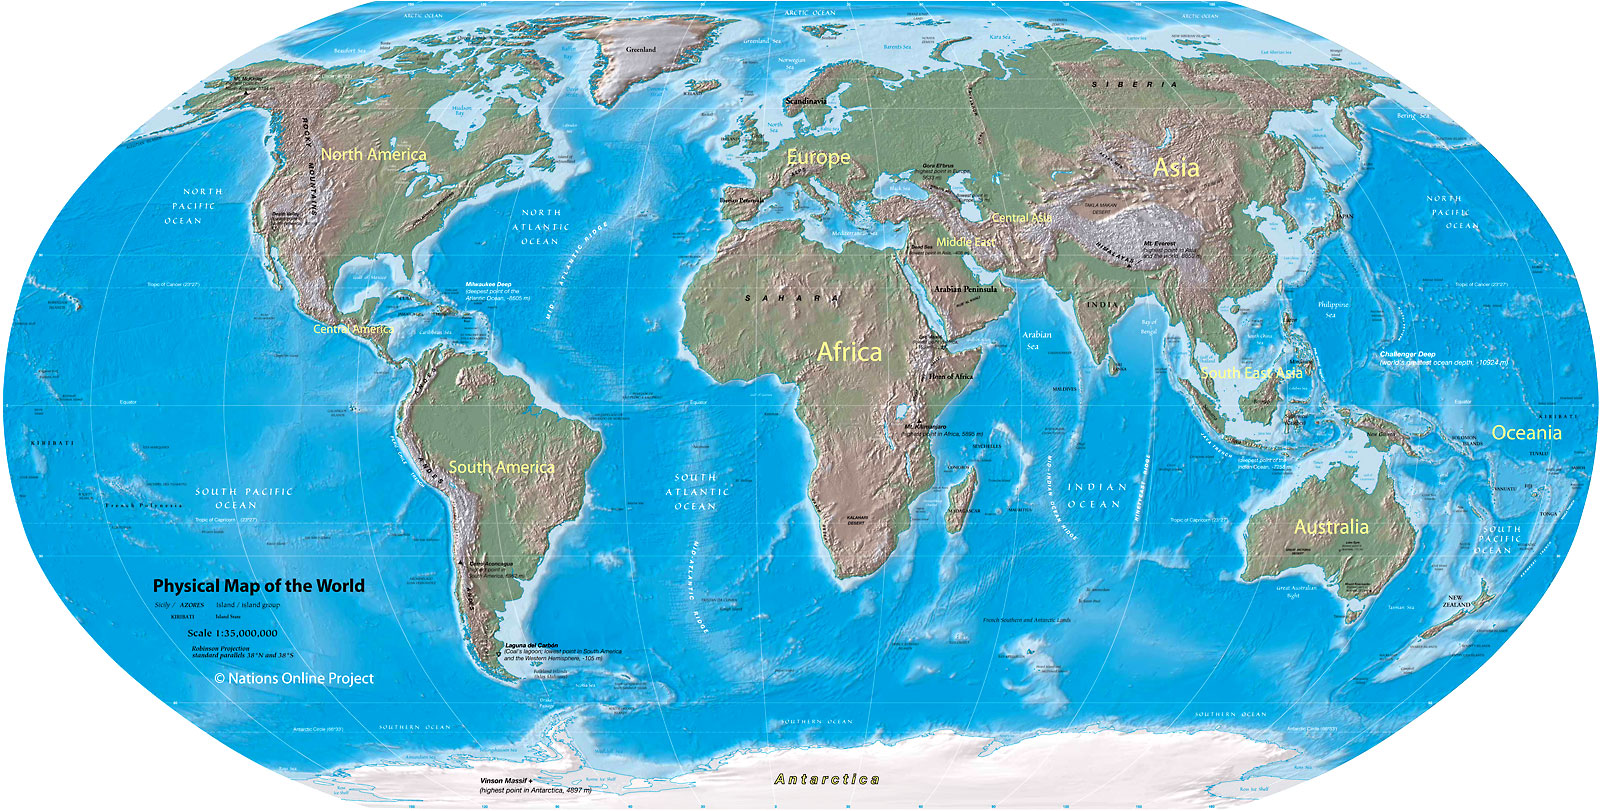 World Map  Physical Map of the World  Nations Online Project